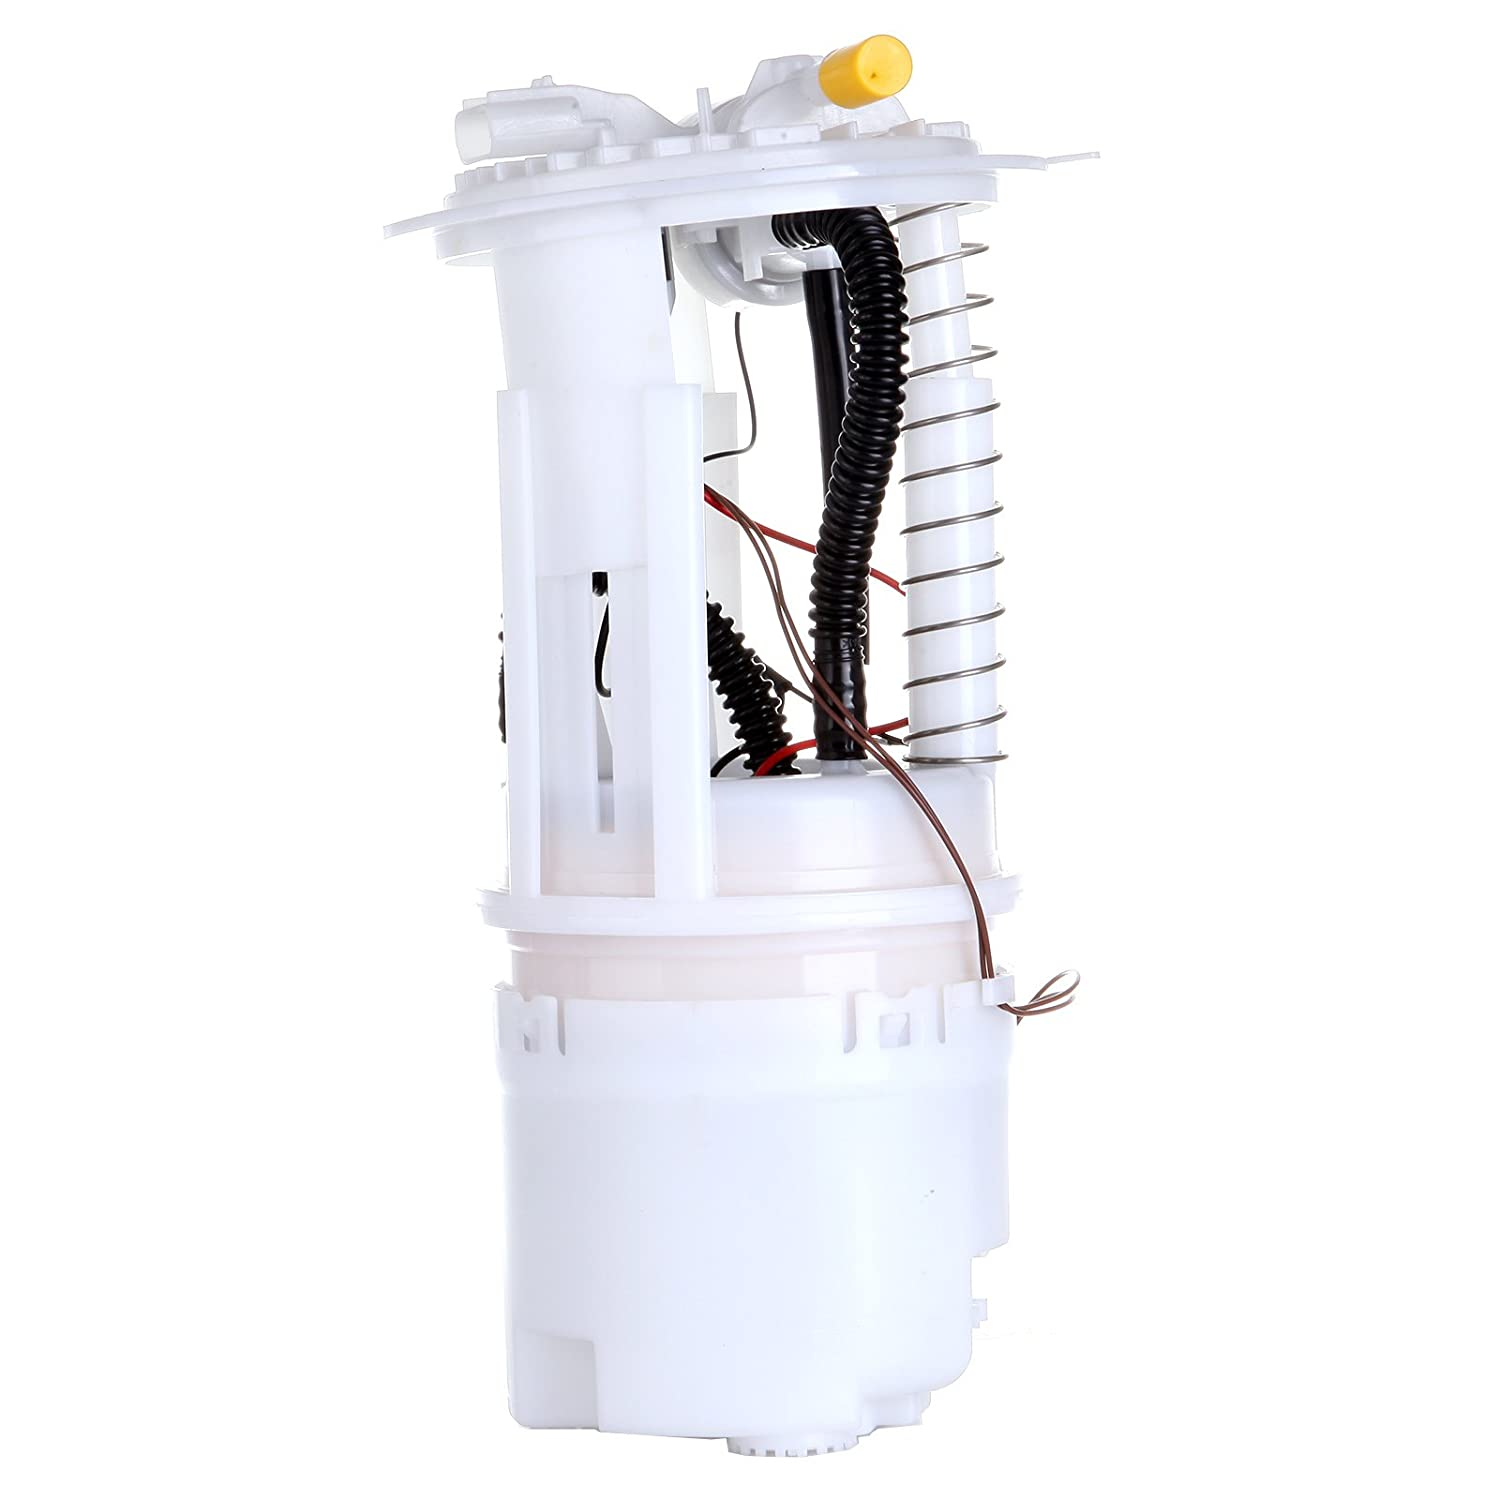 Scitoo E7197m Fuel Pump Electrical Assembly High 2006 Jeep Commander Filter Performance Fit Grand Cherokee V6 V8 Automotive